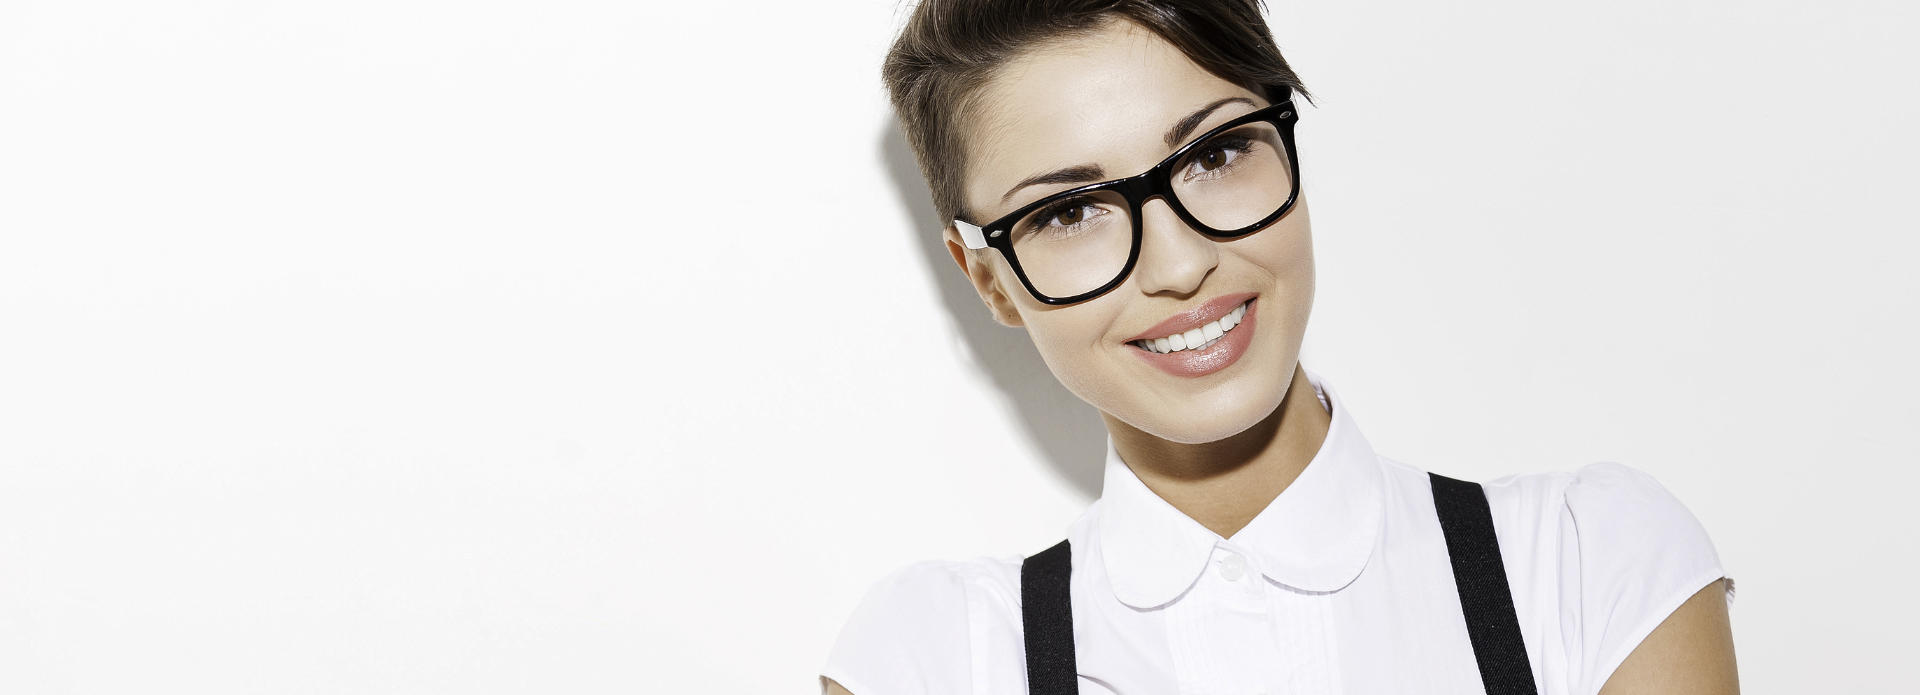 happy, beautiful woman in glases